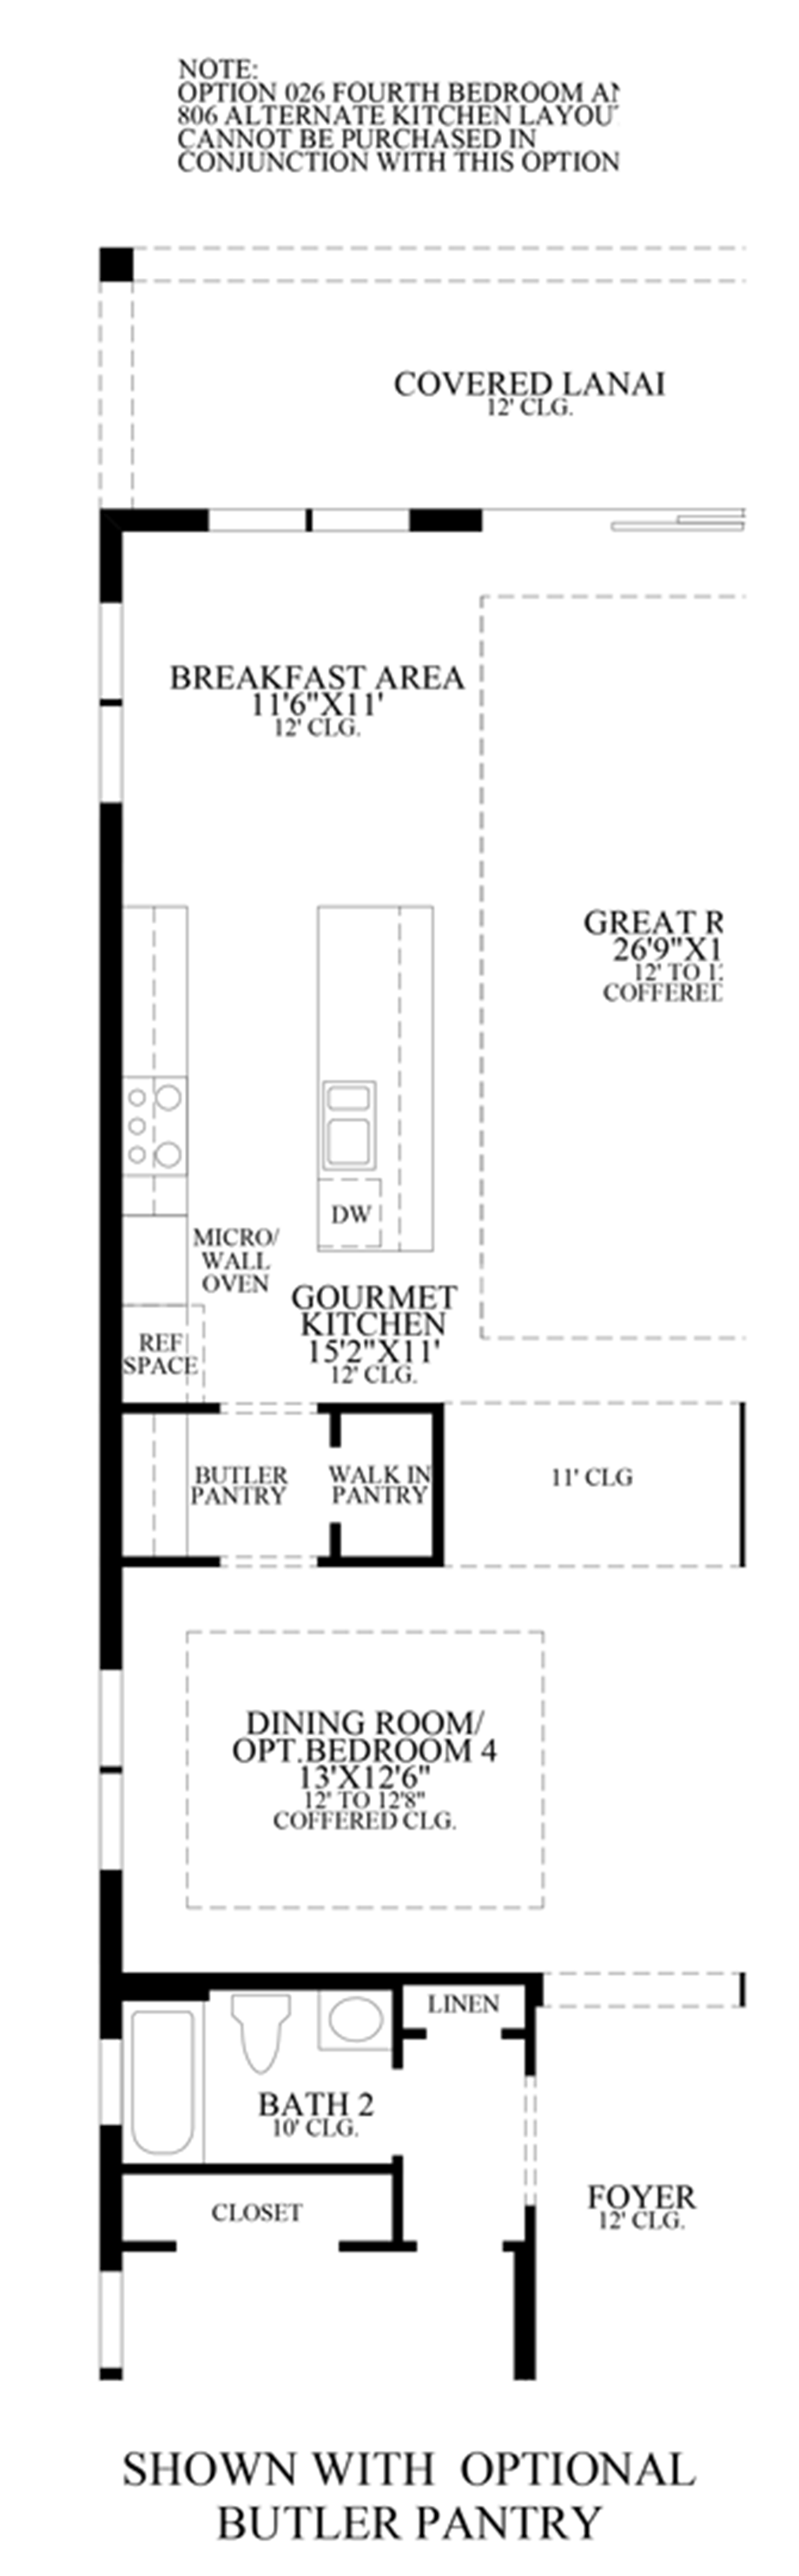 Optional Butler Pantry Floor Plan